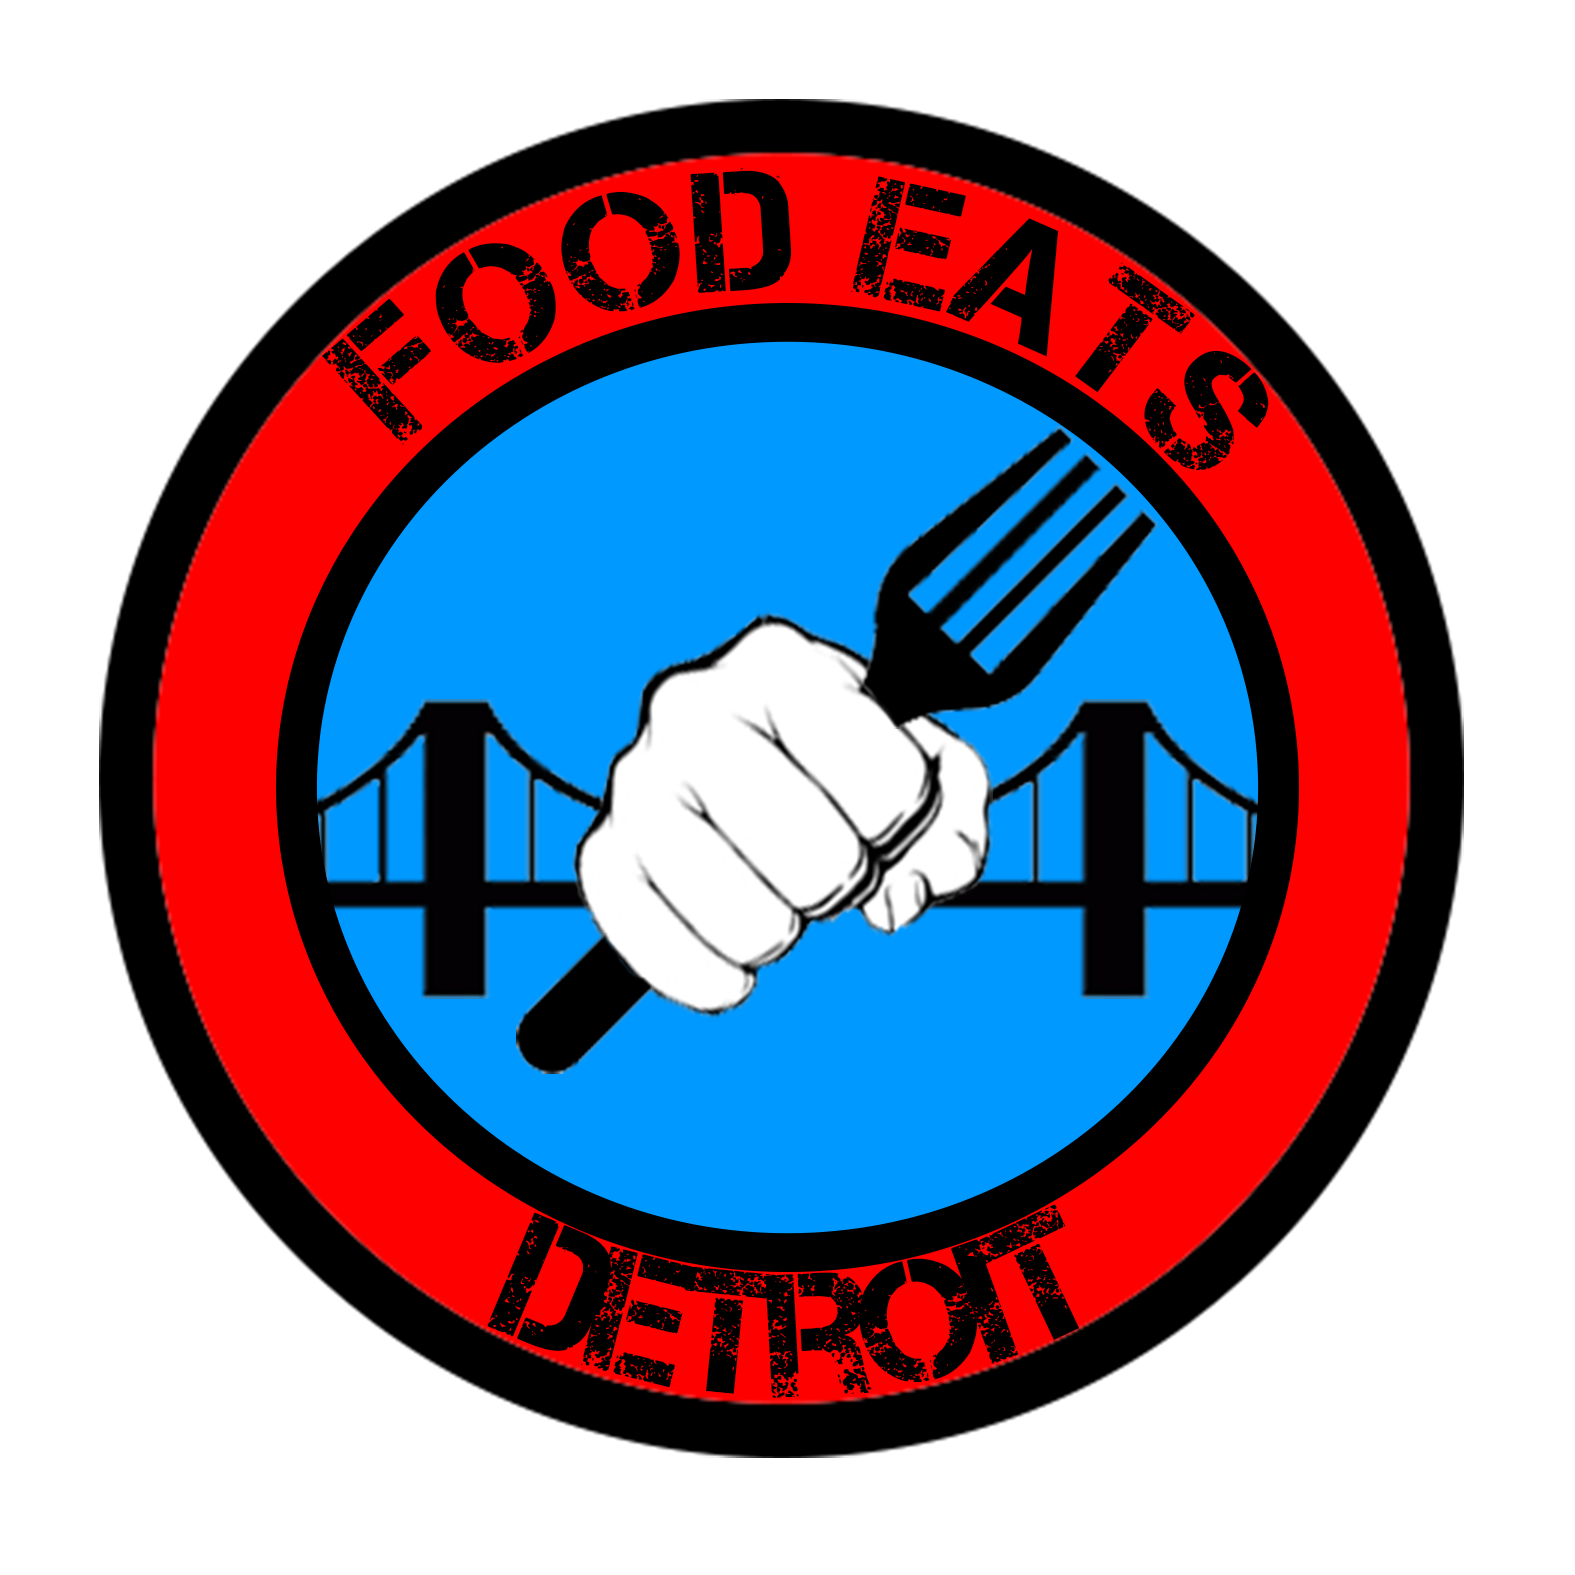 Food Eats Logo